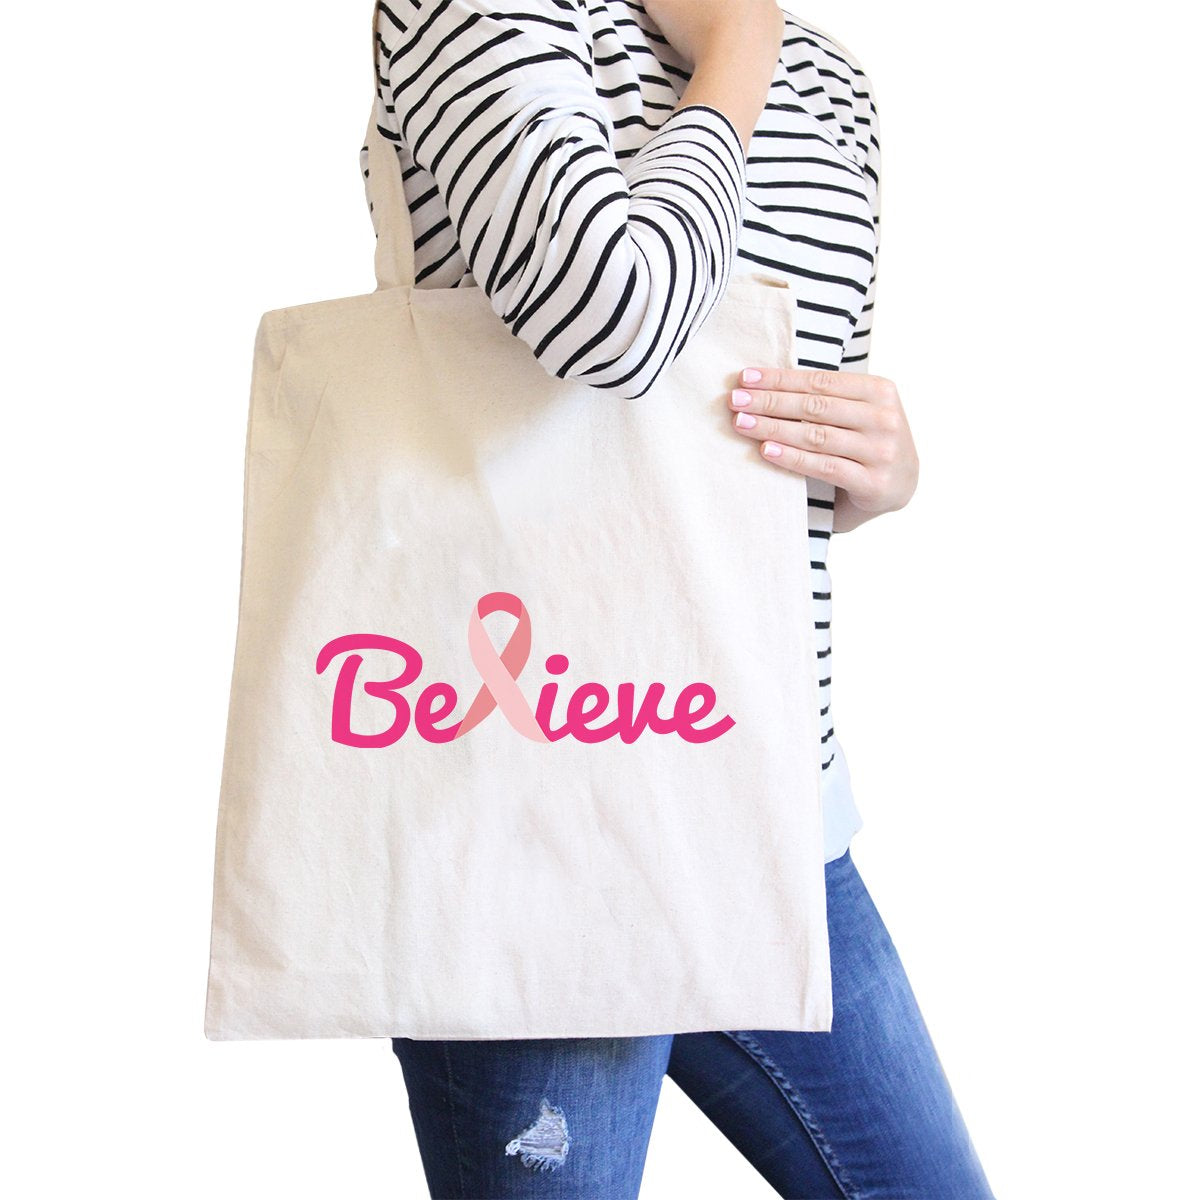 Believe Breast Cancer Awareness Natural Canvas Bags